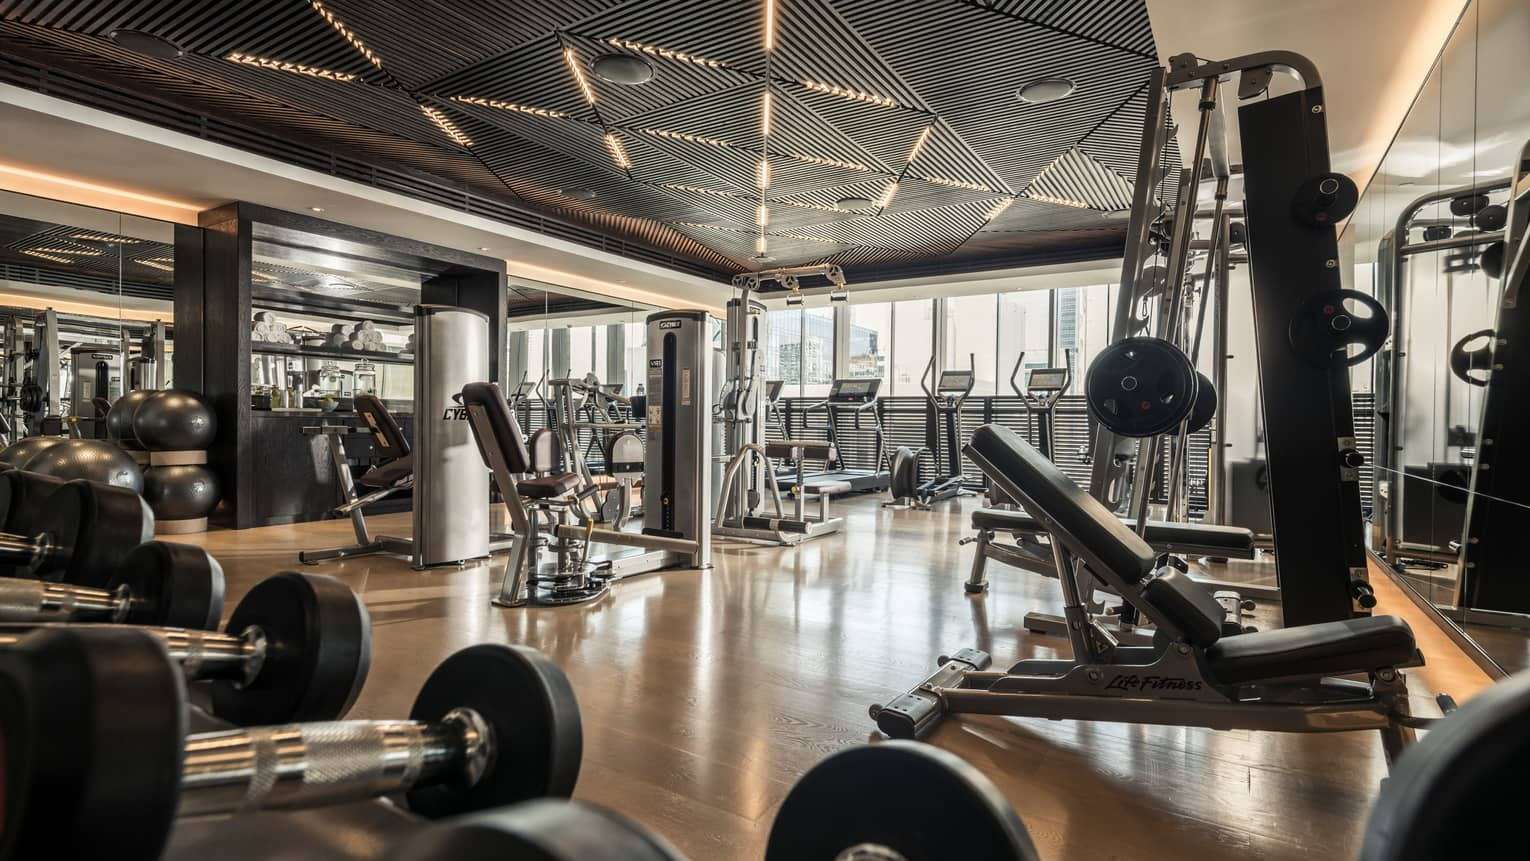 Cardio machines and weight stations line the Fitness Centre